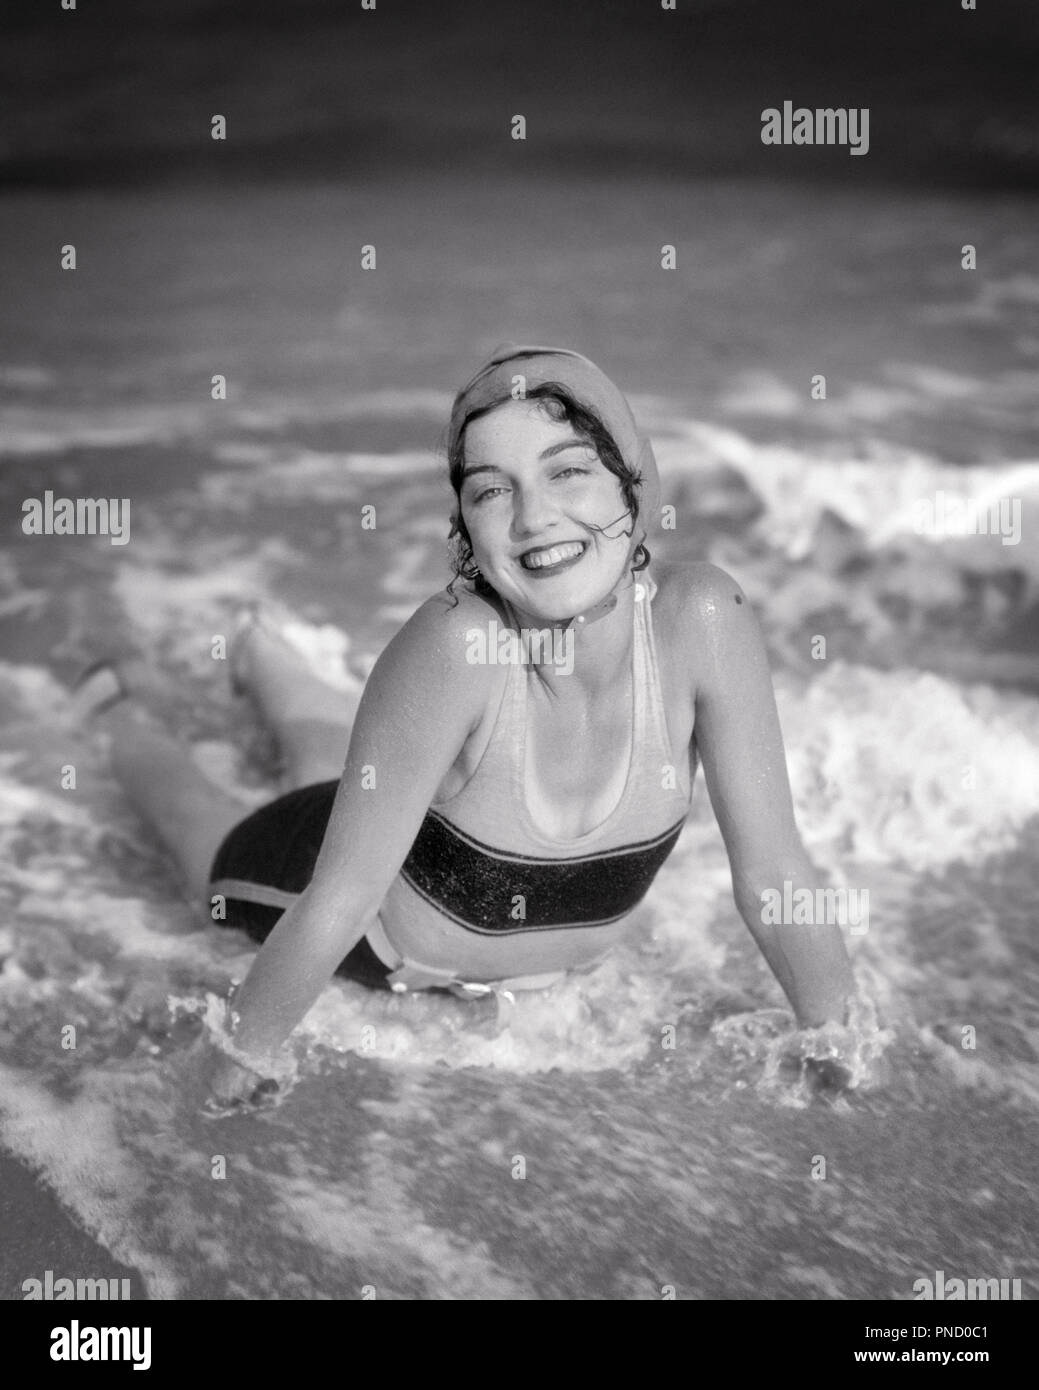 1920s SMILING BRUNETTE WOMAN LYING IN BEACH SURF WAVES WEARING BATHING CAP SWIMSUIT LOOKING AT CAMERA - b5831 HAR001 HARS LADIES PERSONS SURF B&W EYE CONTACT BRUNETTE SHORE HAPPINESS CHEERFUL HIGH ANGLE STYLES EXCITEMENT RECREATION BEACHES SMILES JOYFUL STYLISH BATHING SUIT FASHIONS SEASHORE YOUNG ADULT WOMAN BLACK AND WHITE CAUCASIAN ETHNICITY COASTAL HAR001 OLD FASHIONED - Stock Image